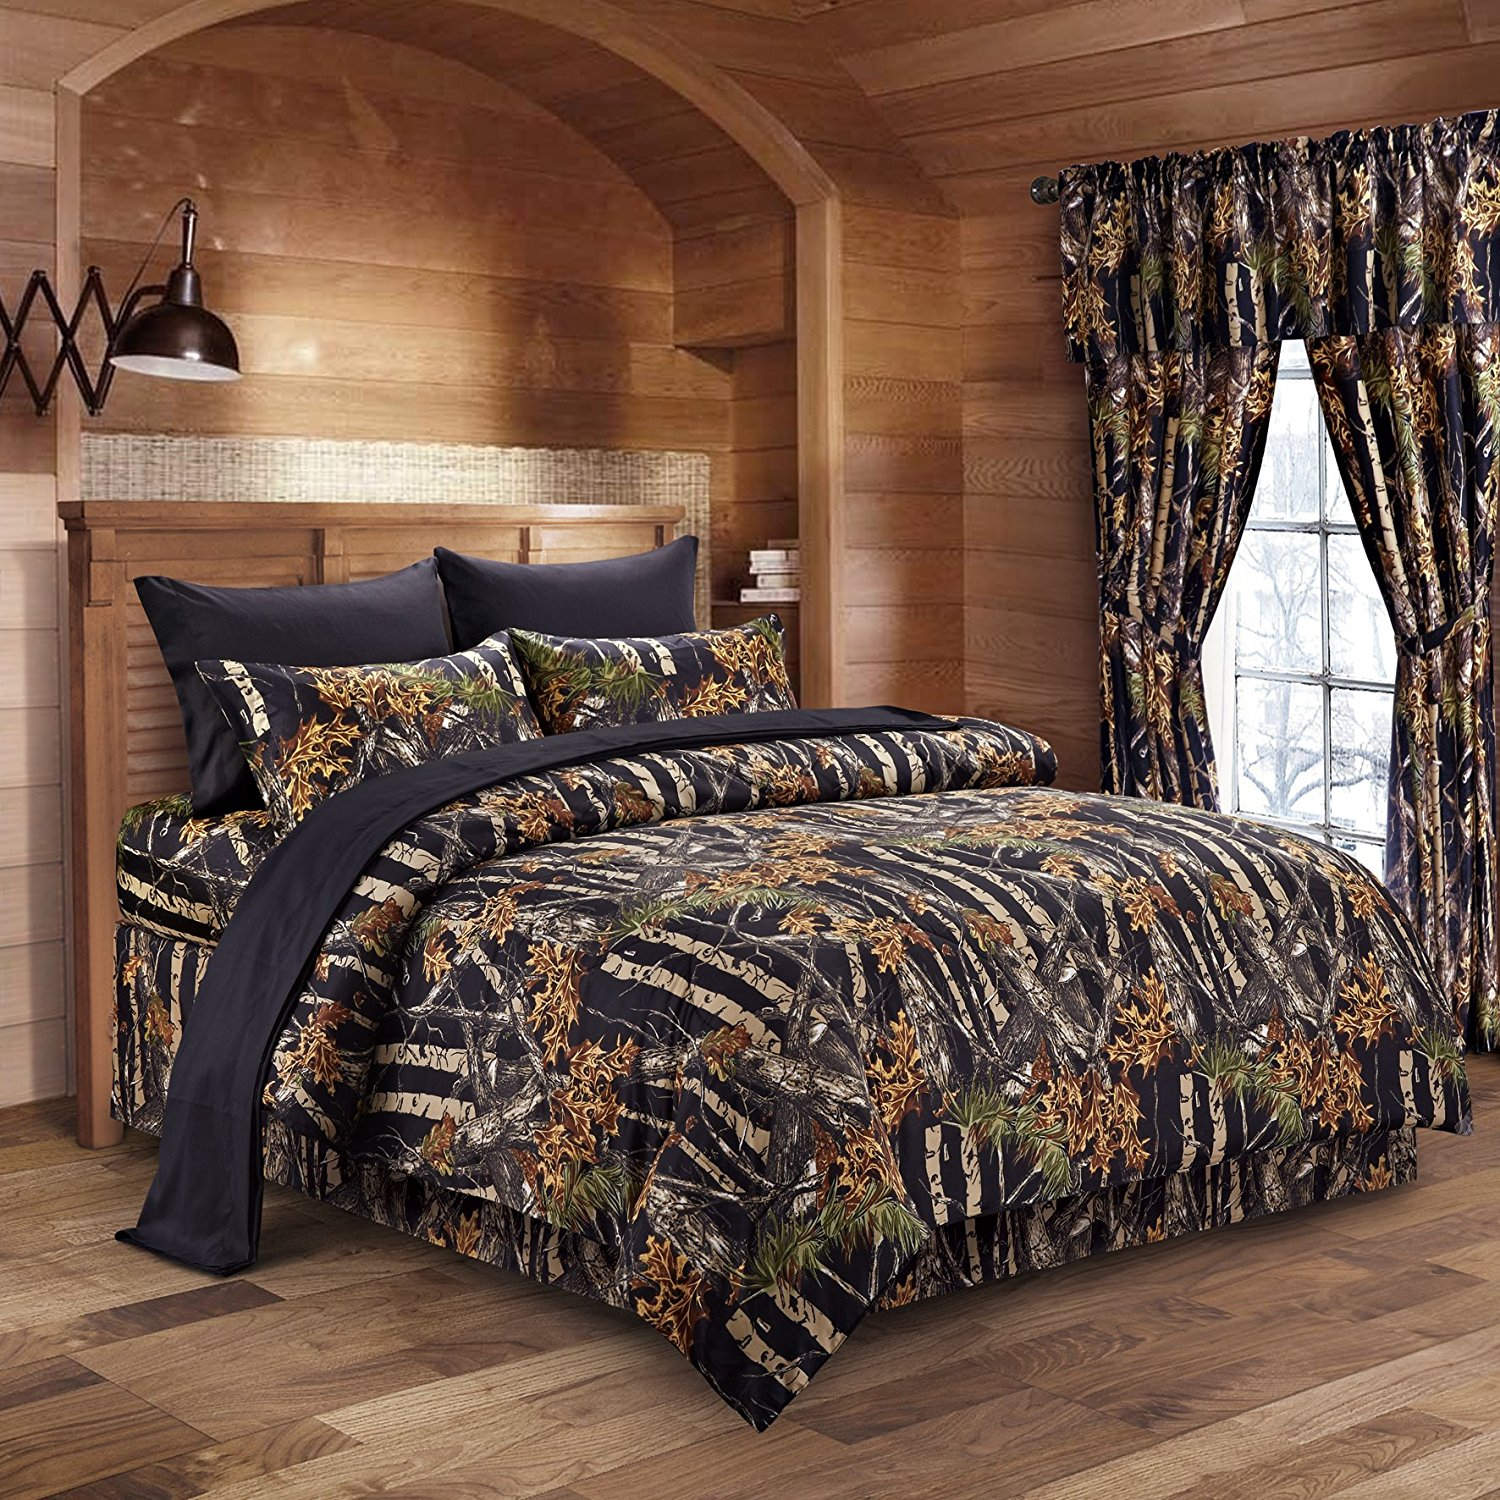 The Woods Black Camouflage Twin 5pc Premium Luxury Comforter, Sheet, Pillowcases, and Bed Skirt Set by Regal Comfort Camo Bedding Set For Hunters Cabin or Rustic Lodge Teens Boys and Girls